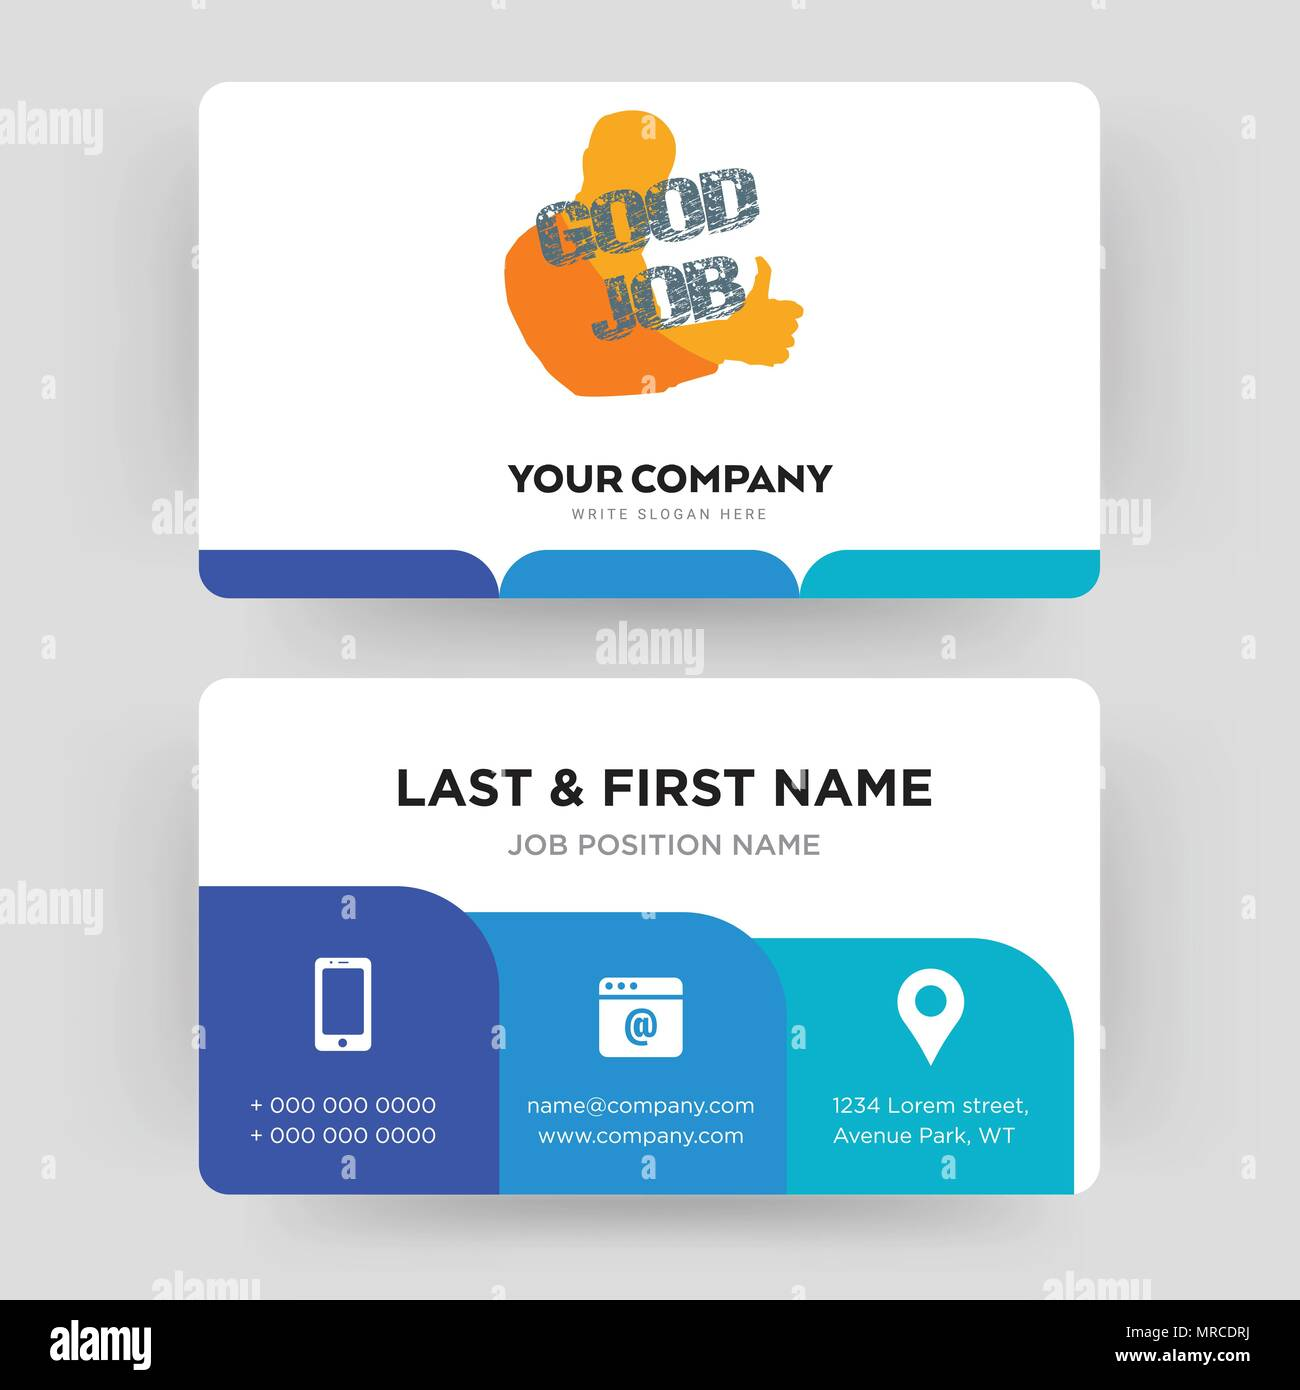 good job business card design template visiting for your company